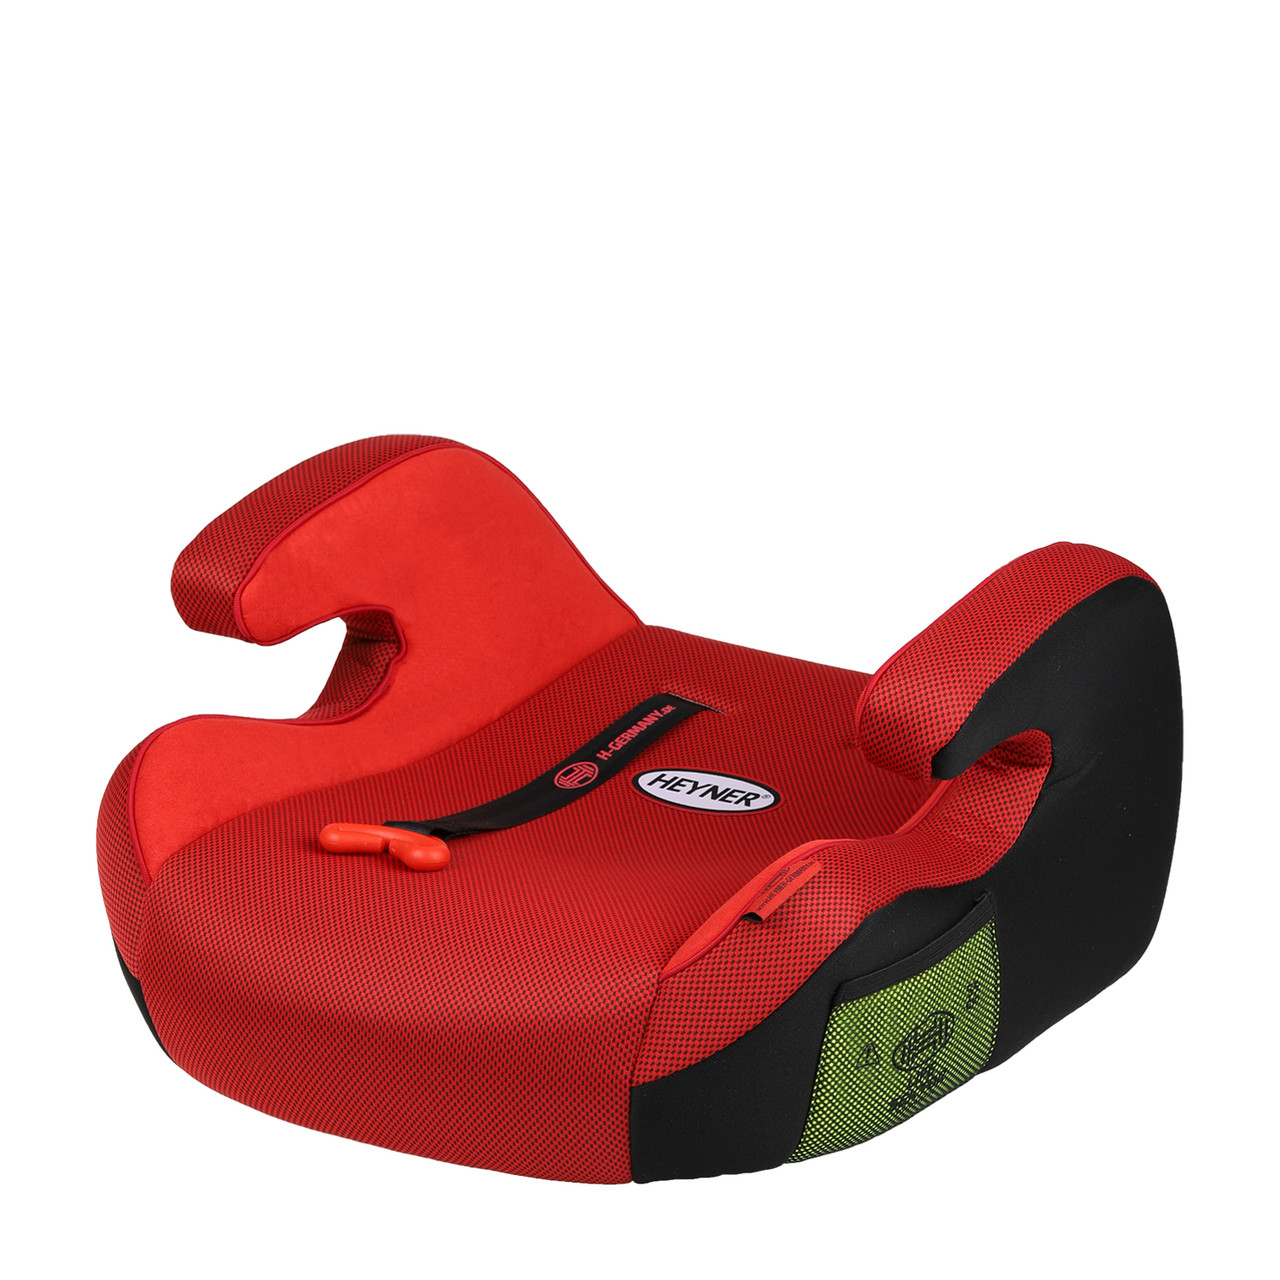 Бустер Heyner SafeUp Comfort  XL (II + III) Racing Red 783 300 красный 15-36 кг